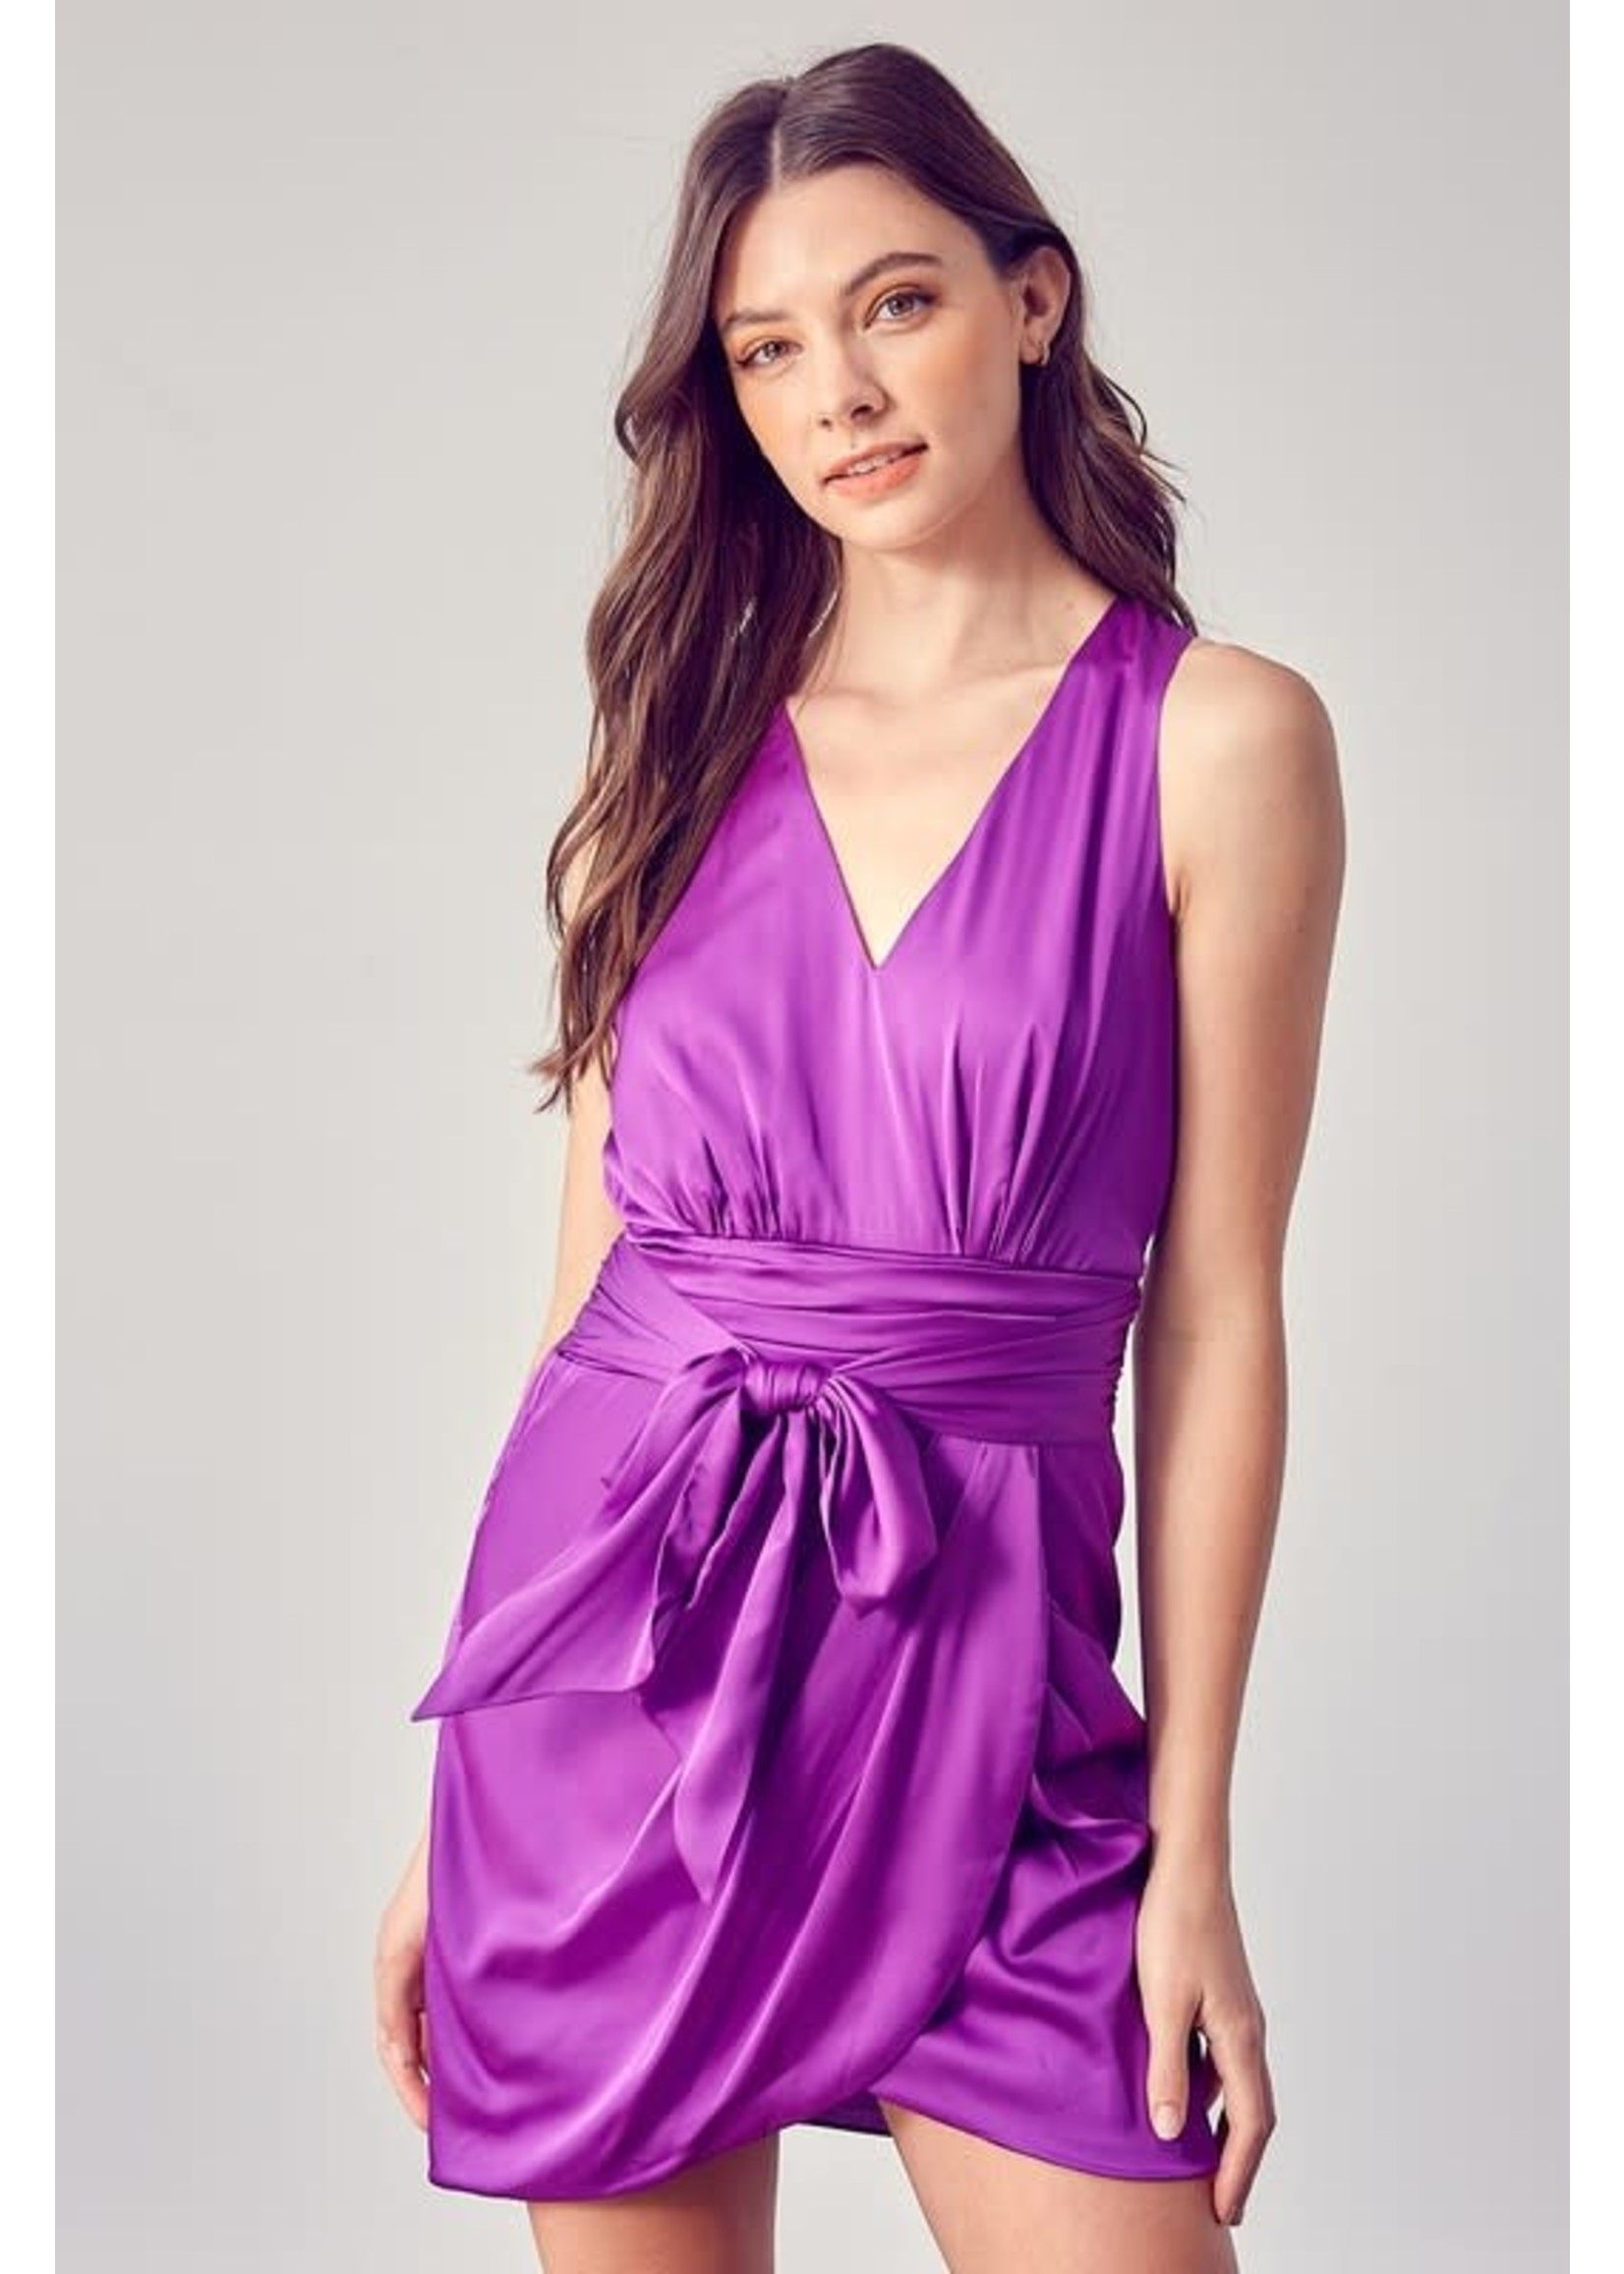 DO + BE V-Neck Front Tying Dress with Bow - GY0973